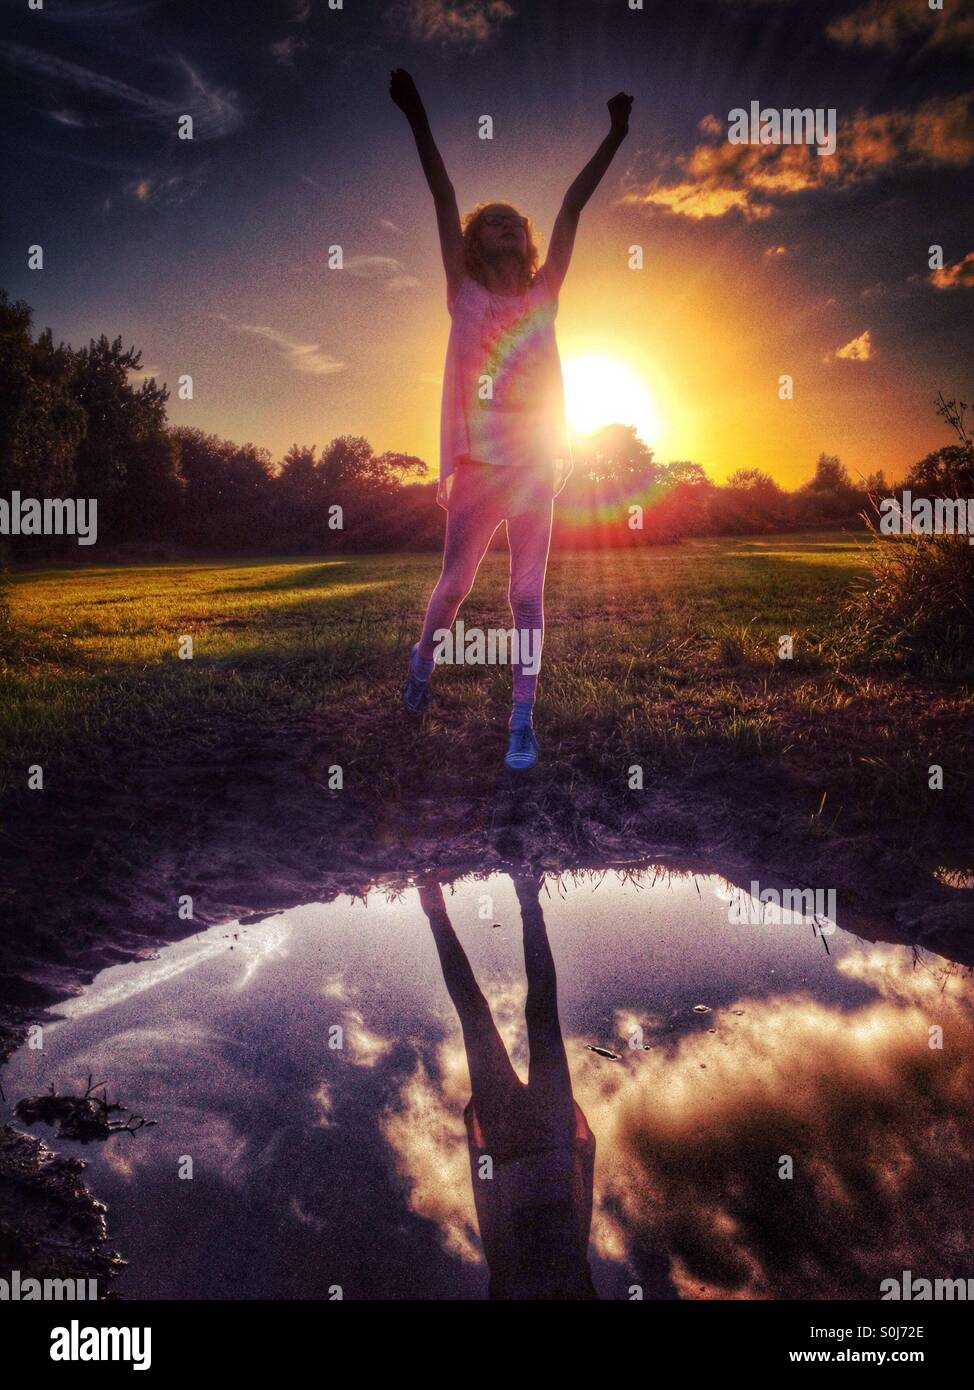 Young girl with arms raised in celebration in front of setting sun - Stock Image